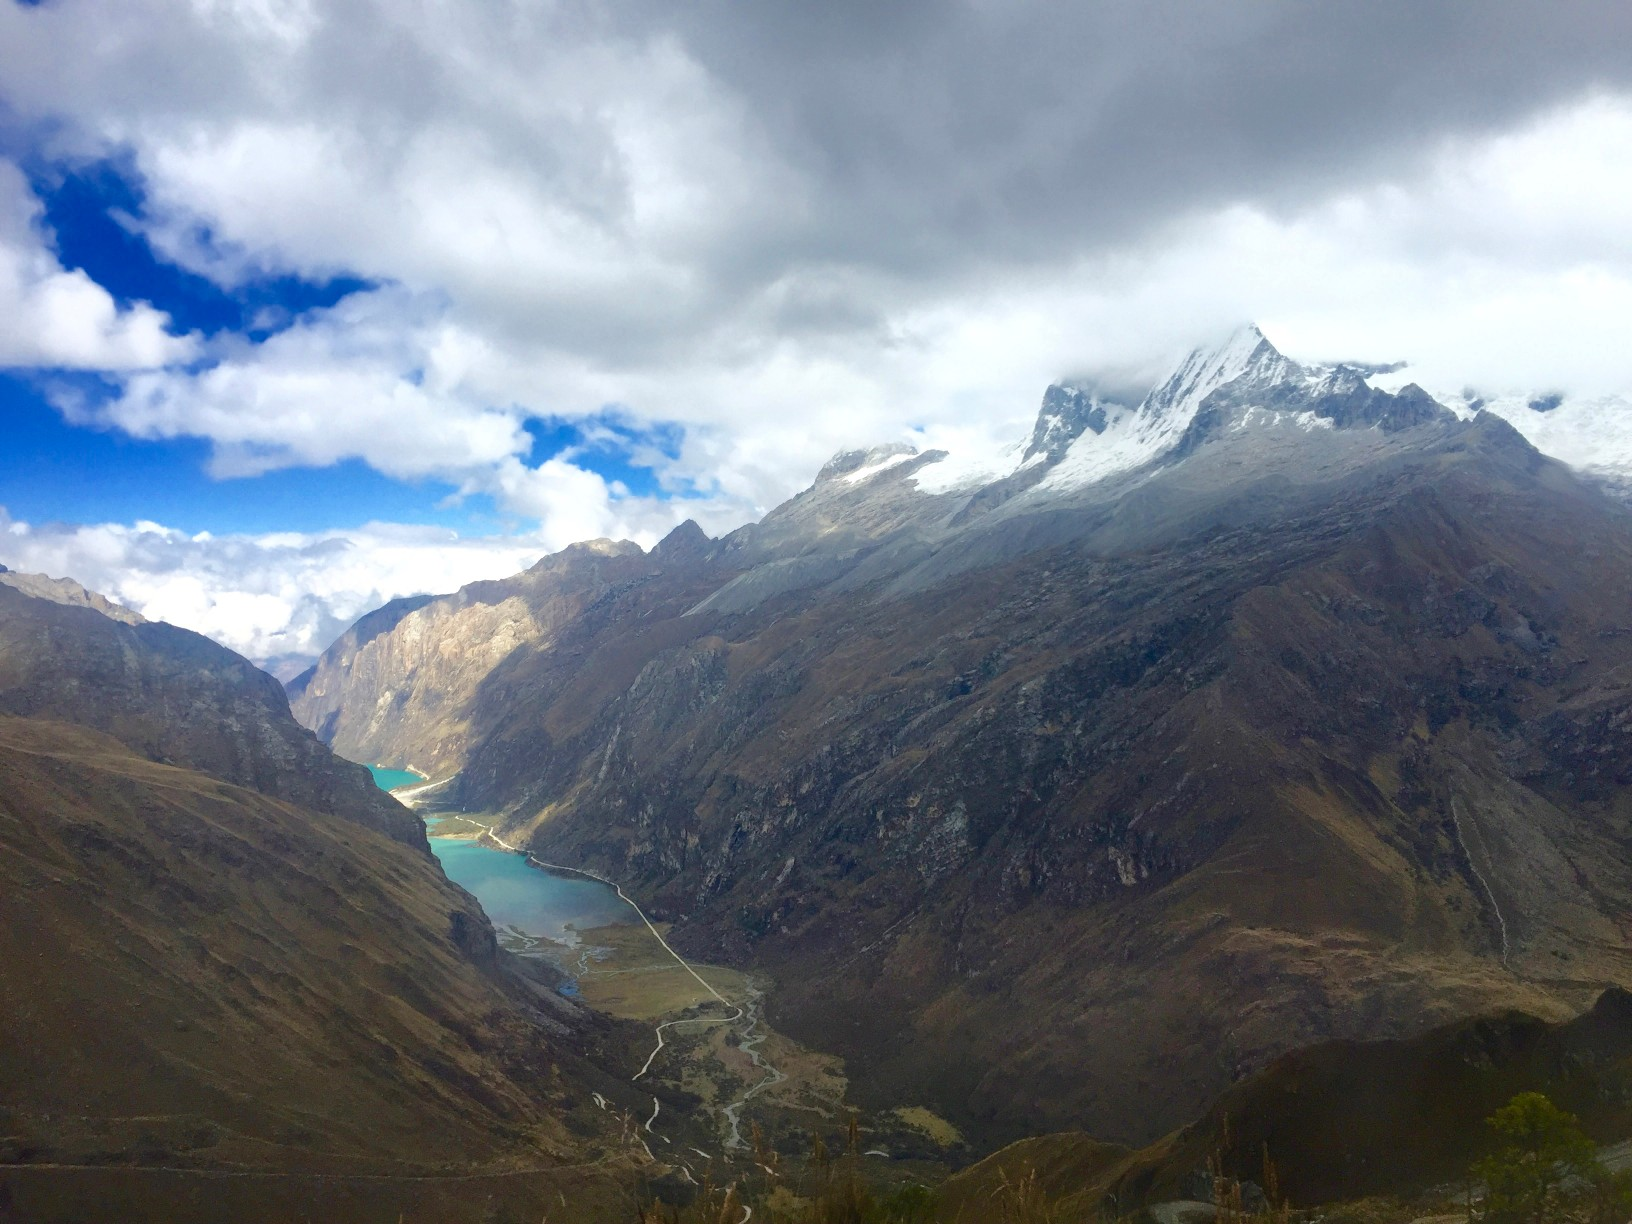 Arequipa vs. Huaraz: Which Should You Visit?